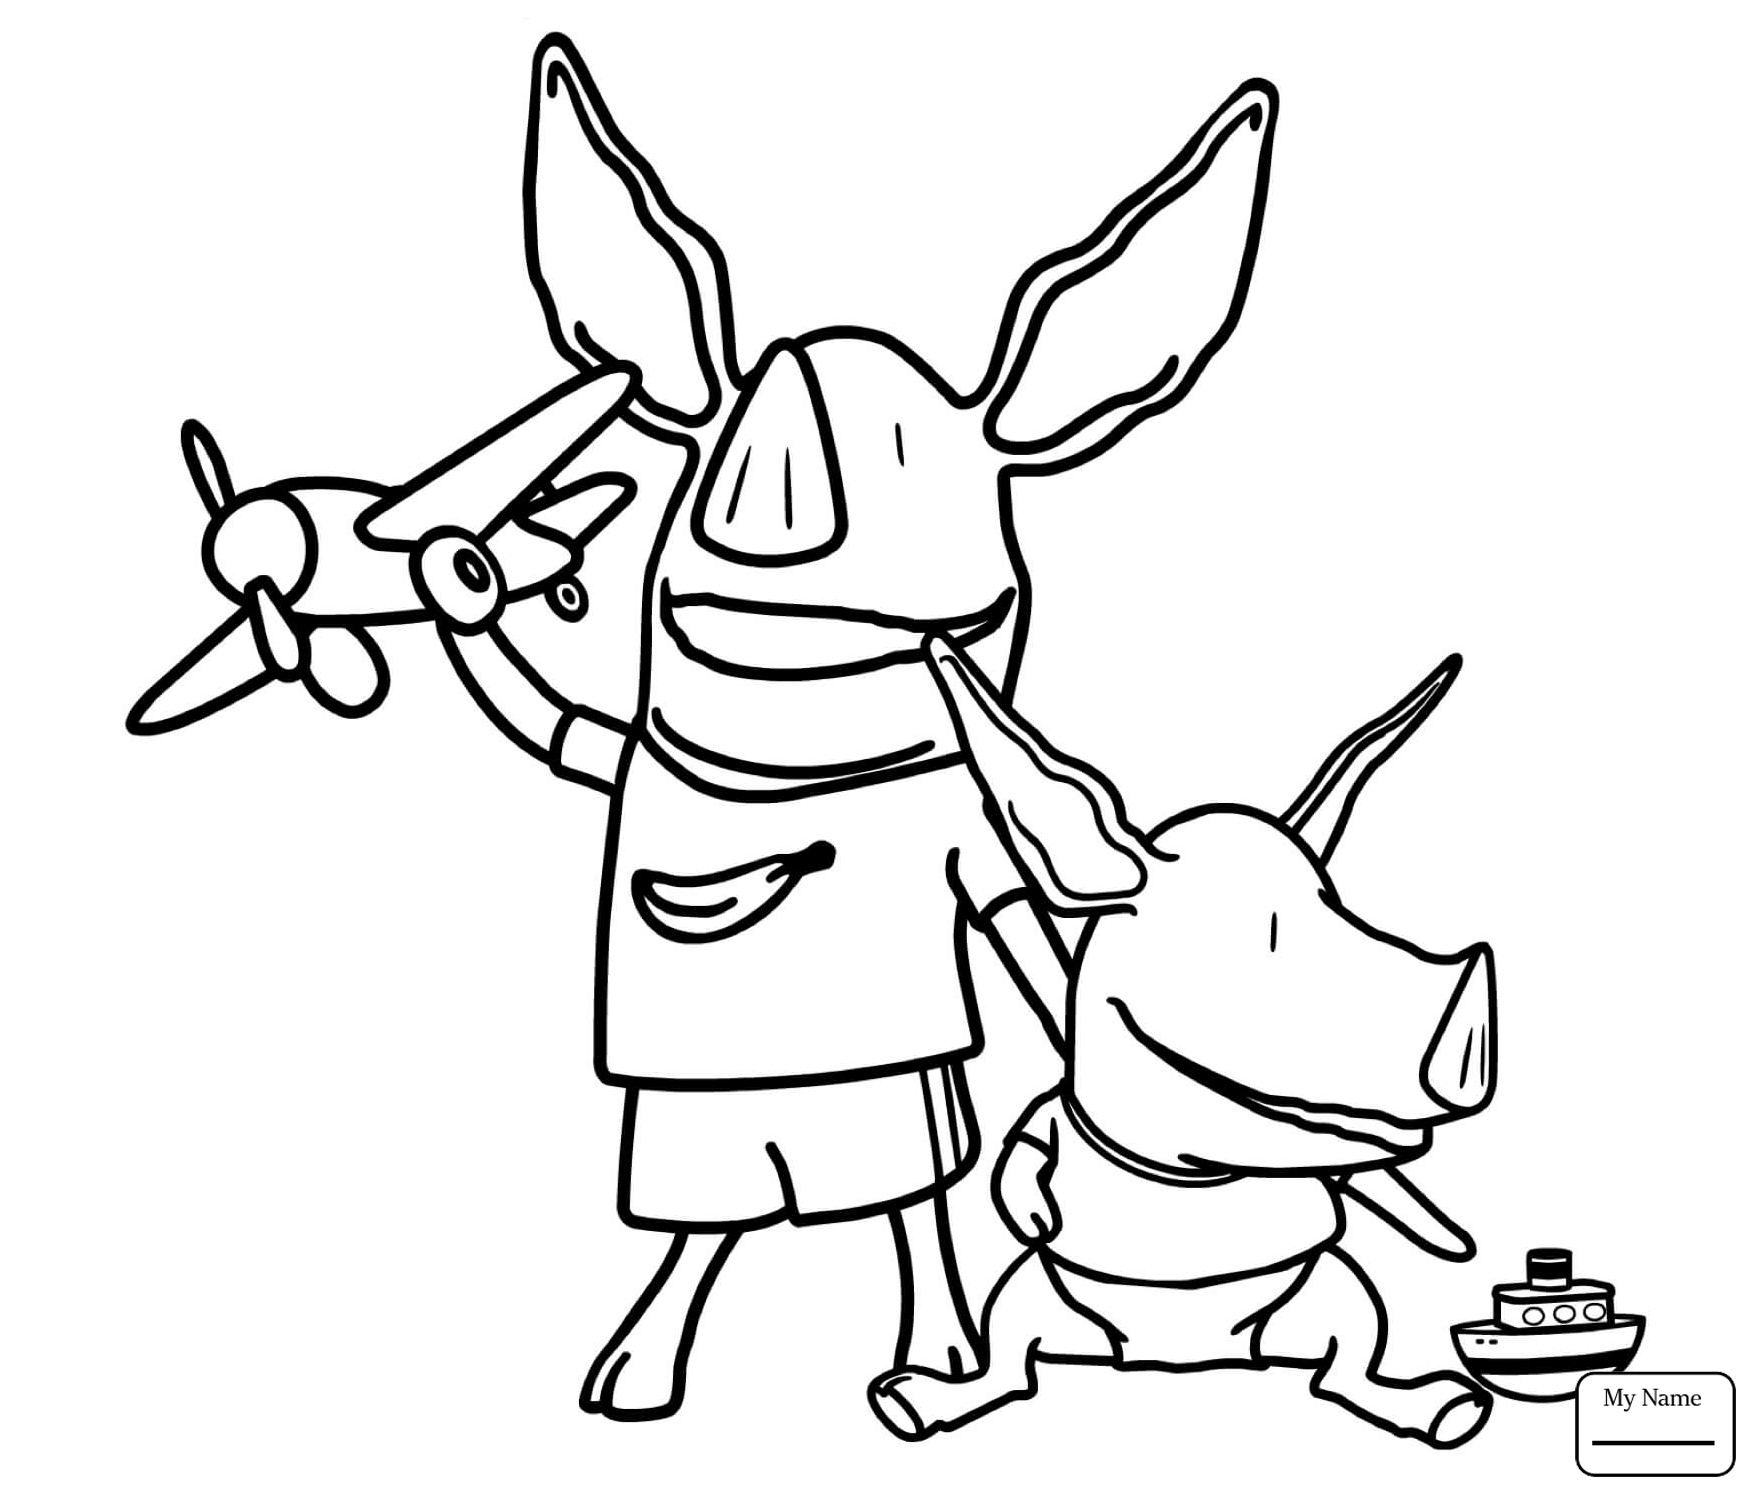 Olivia Coloring Pages At Getdrawings Com Free For Personal Use